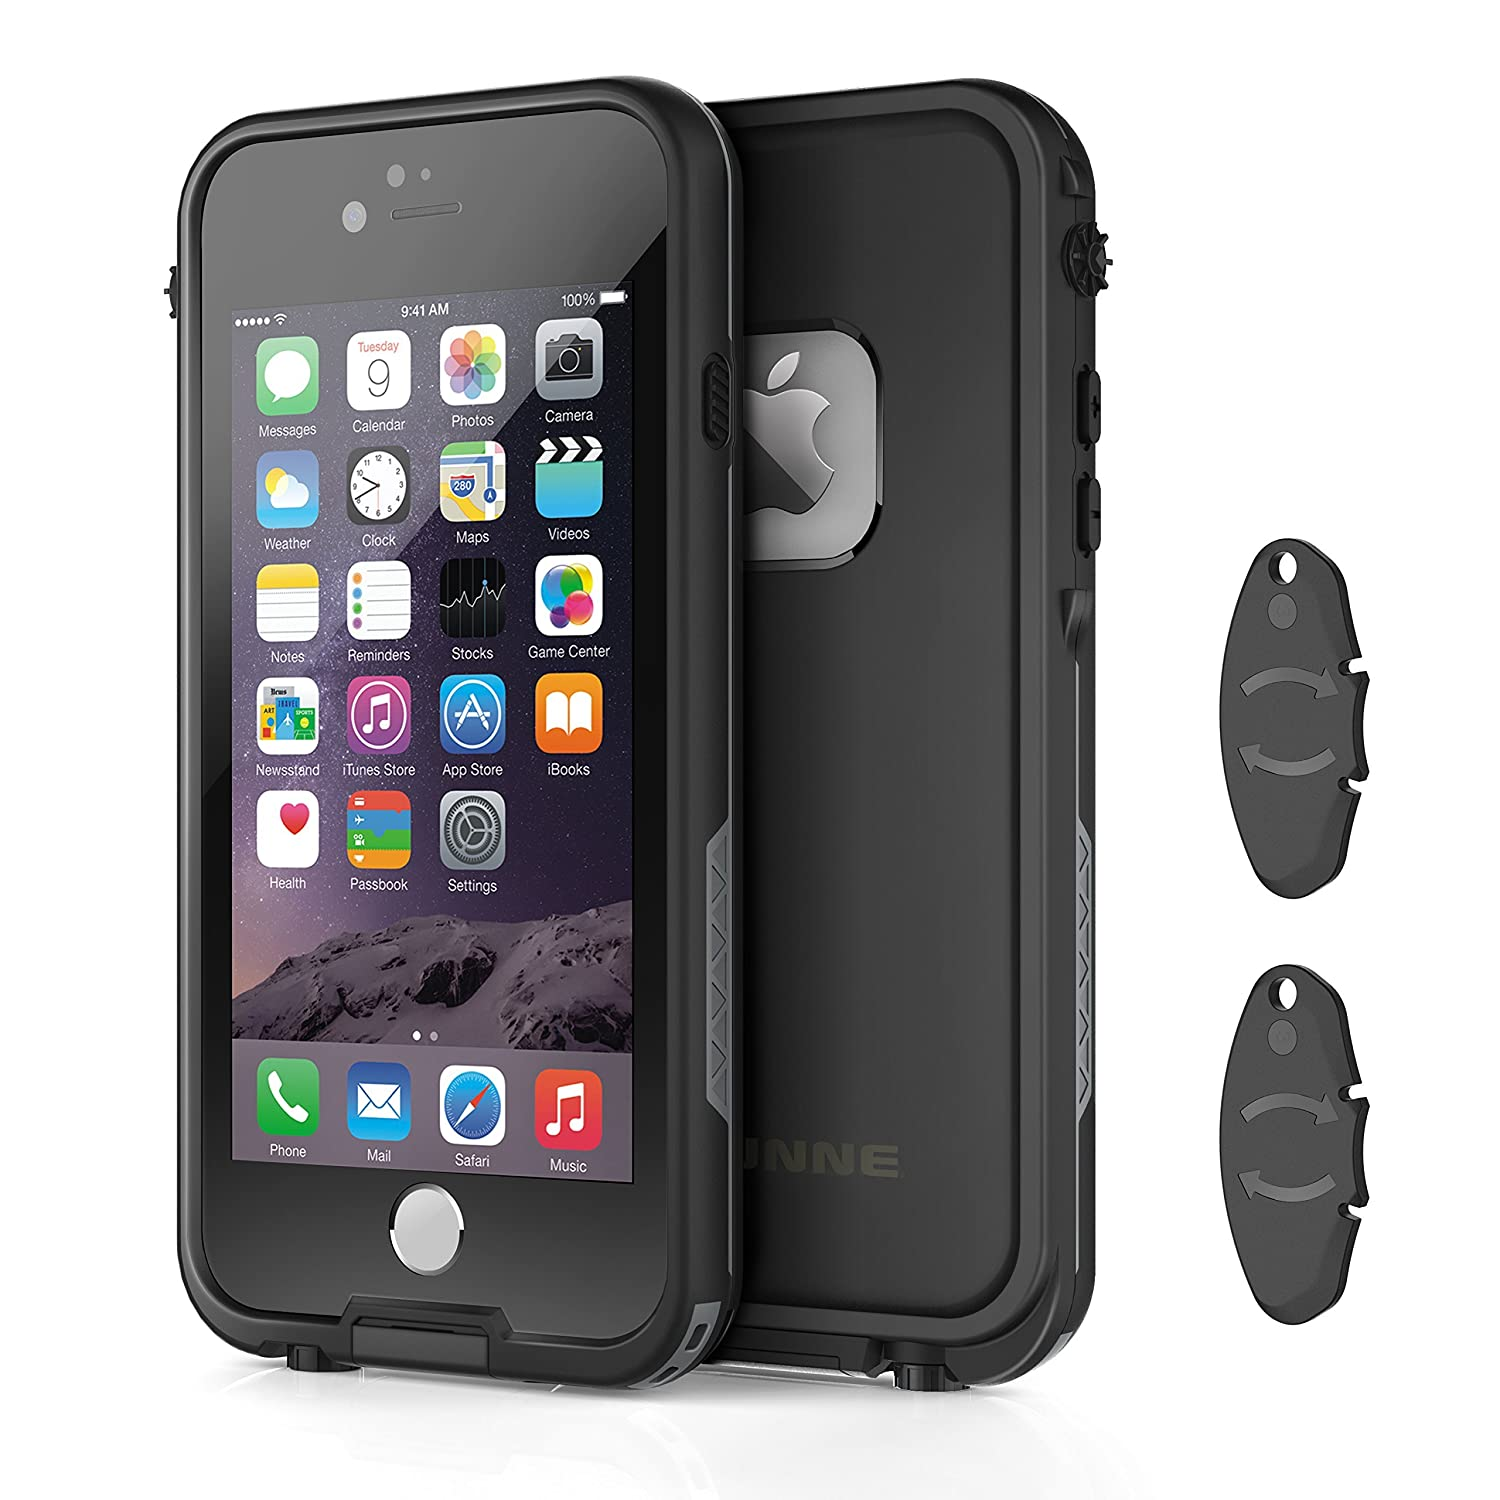 Amazon iphone 66s waterproof case with 2 case openers ounne amazon iphone 66s waterproof case with 2 case openers ounne shockproof ip68 certified with touch id sand proof snowproof full body cover for iphone falaconquin